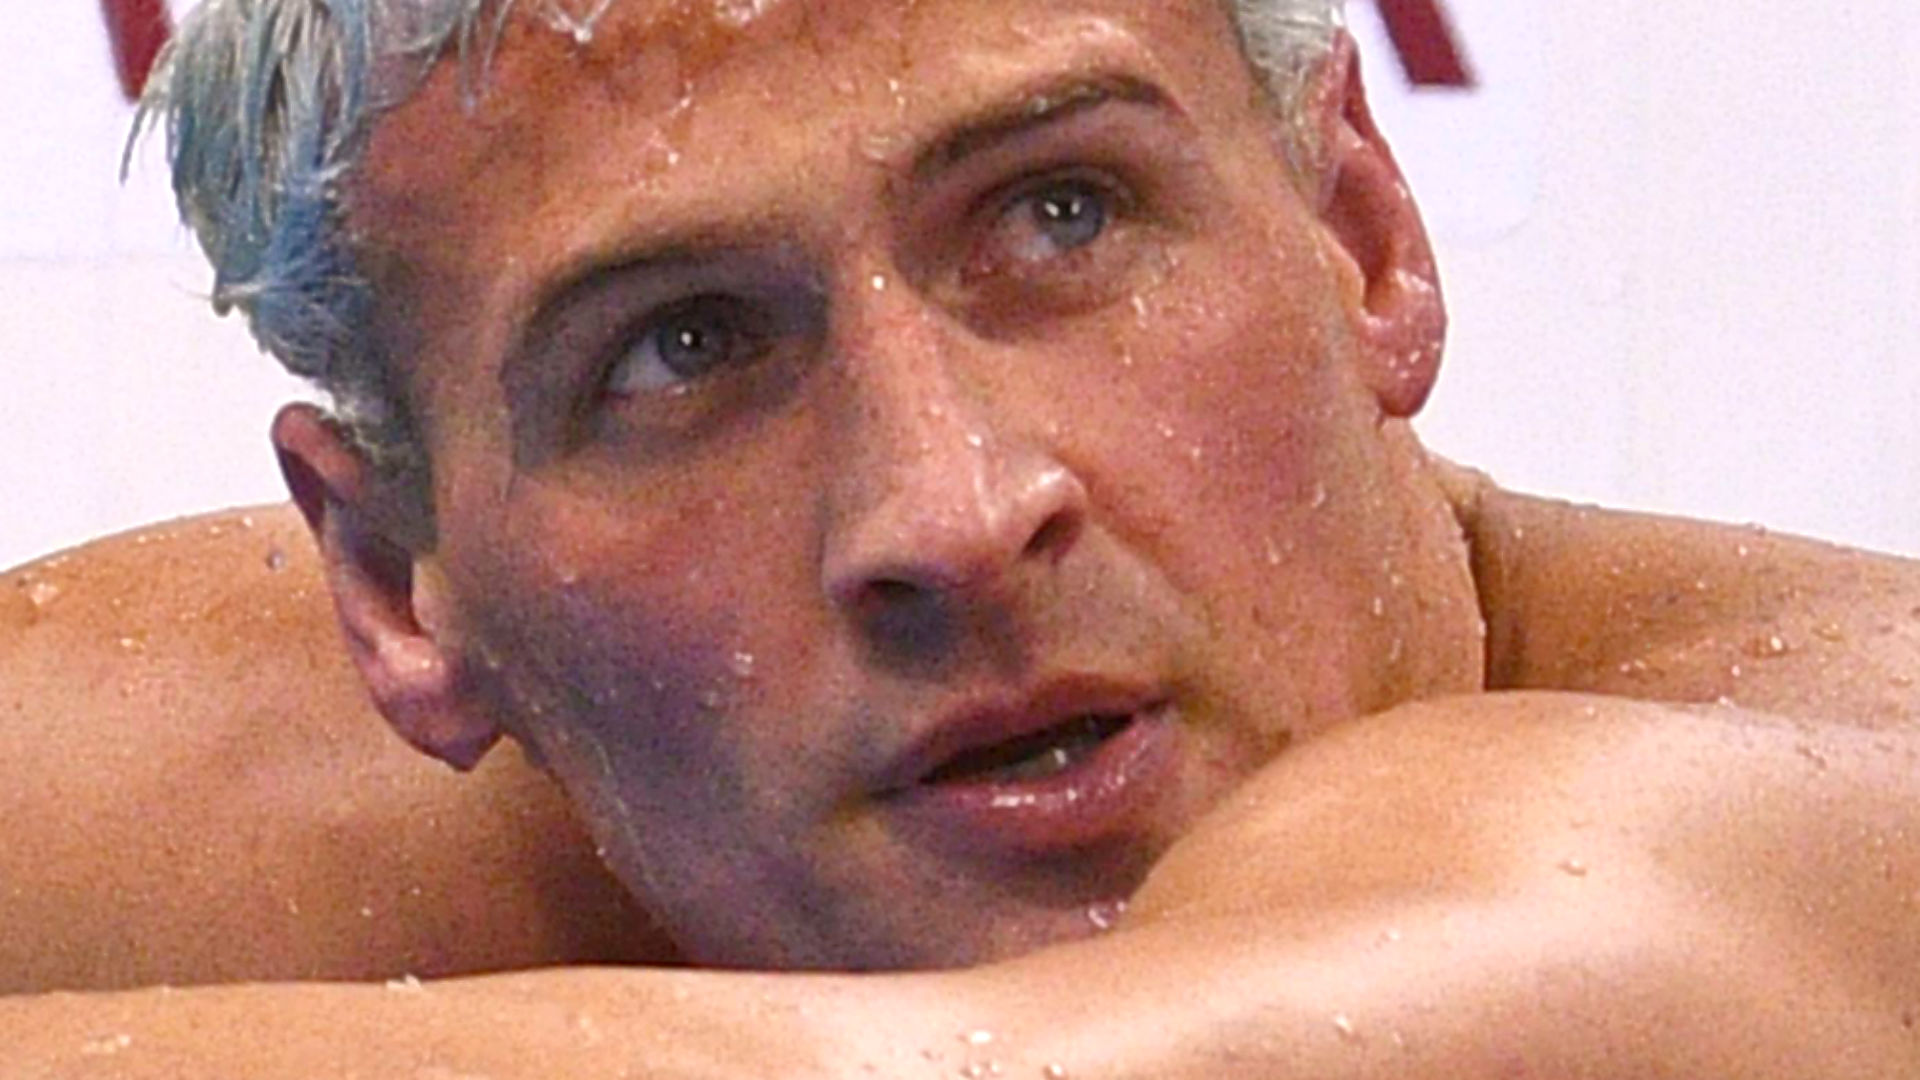 US Swimmer Ryan Lochte Apologizes for Fabricated Robbery Story